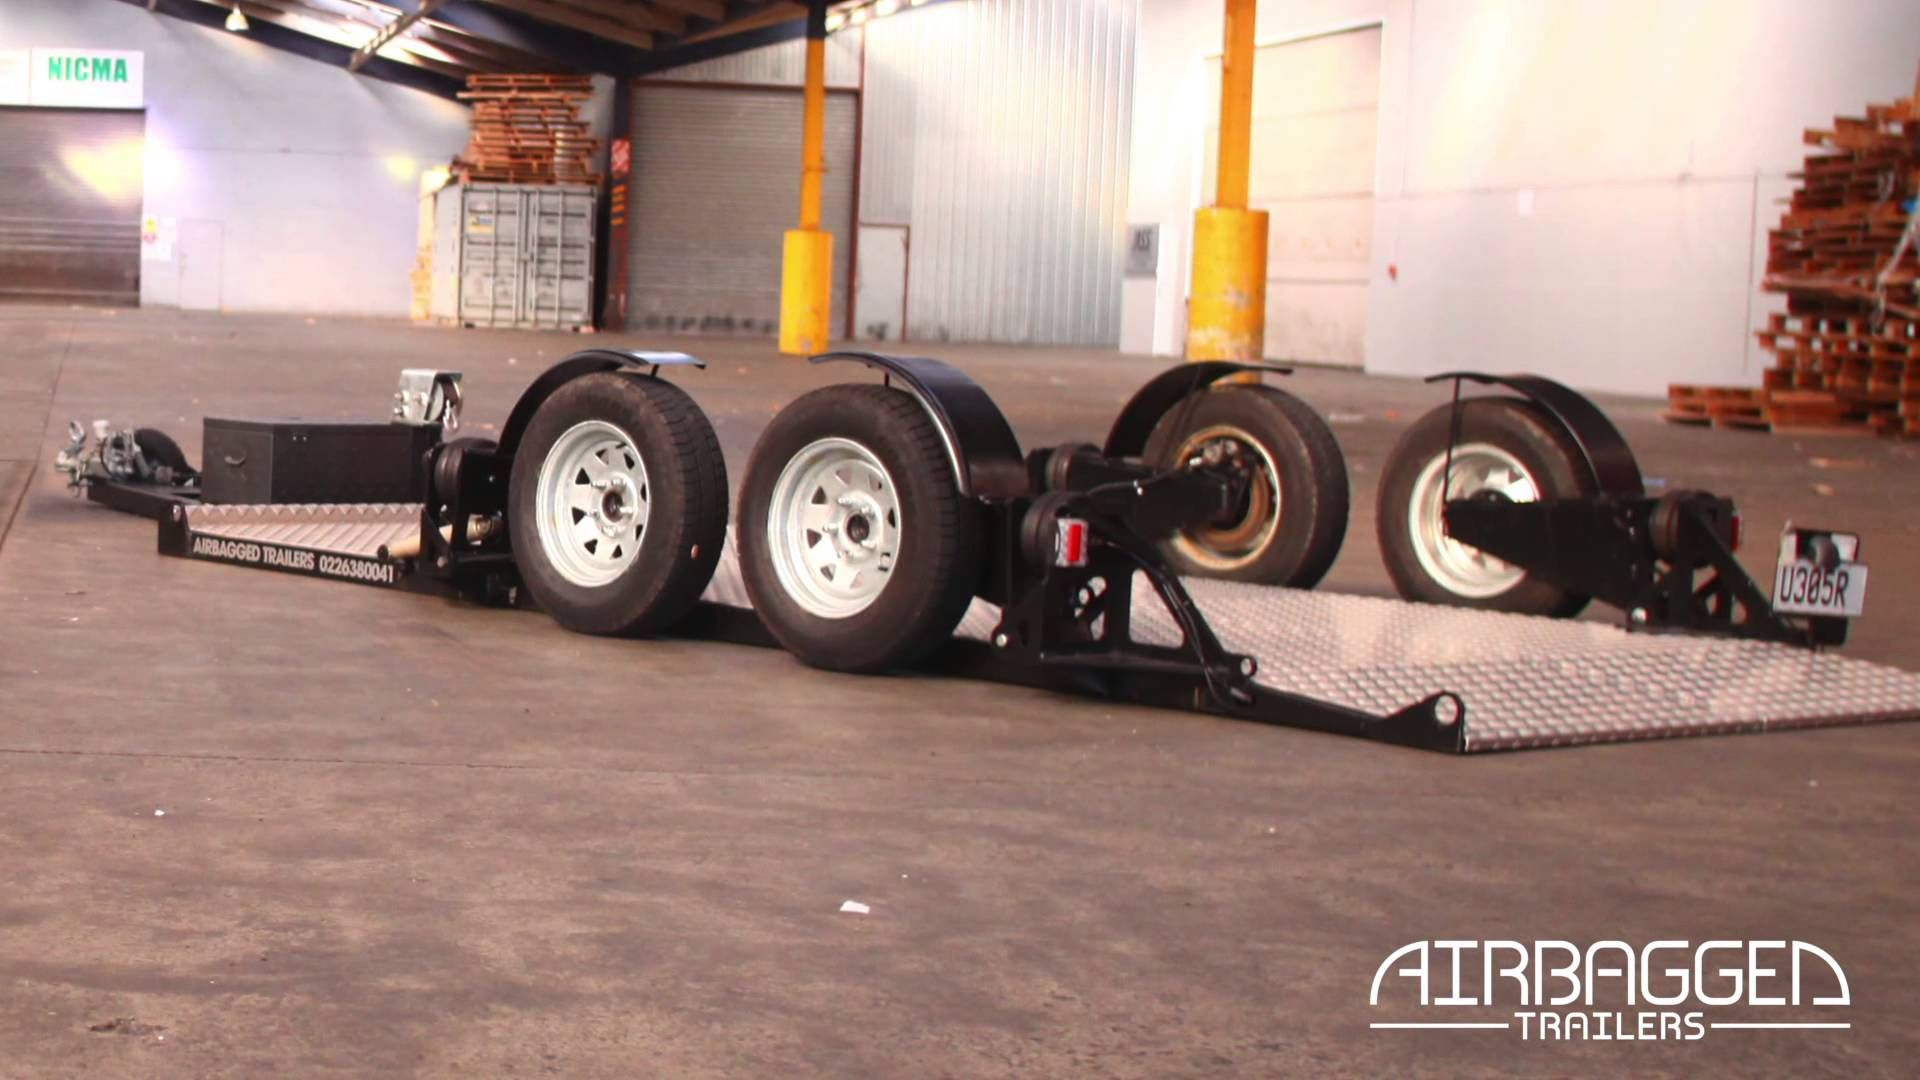 Airbagged Trailers Introduction Video. Car trailer